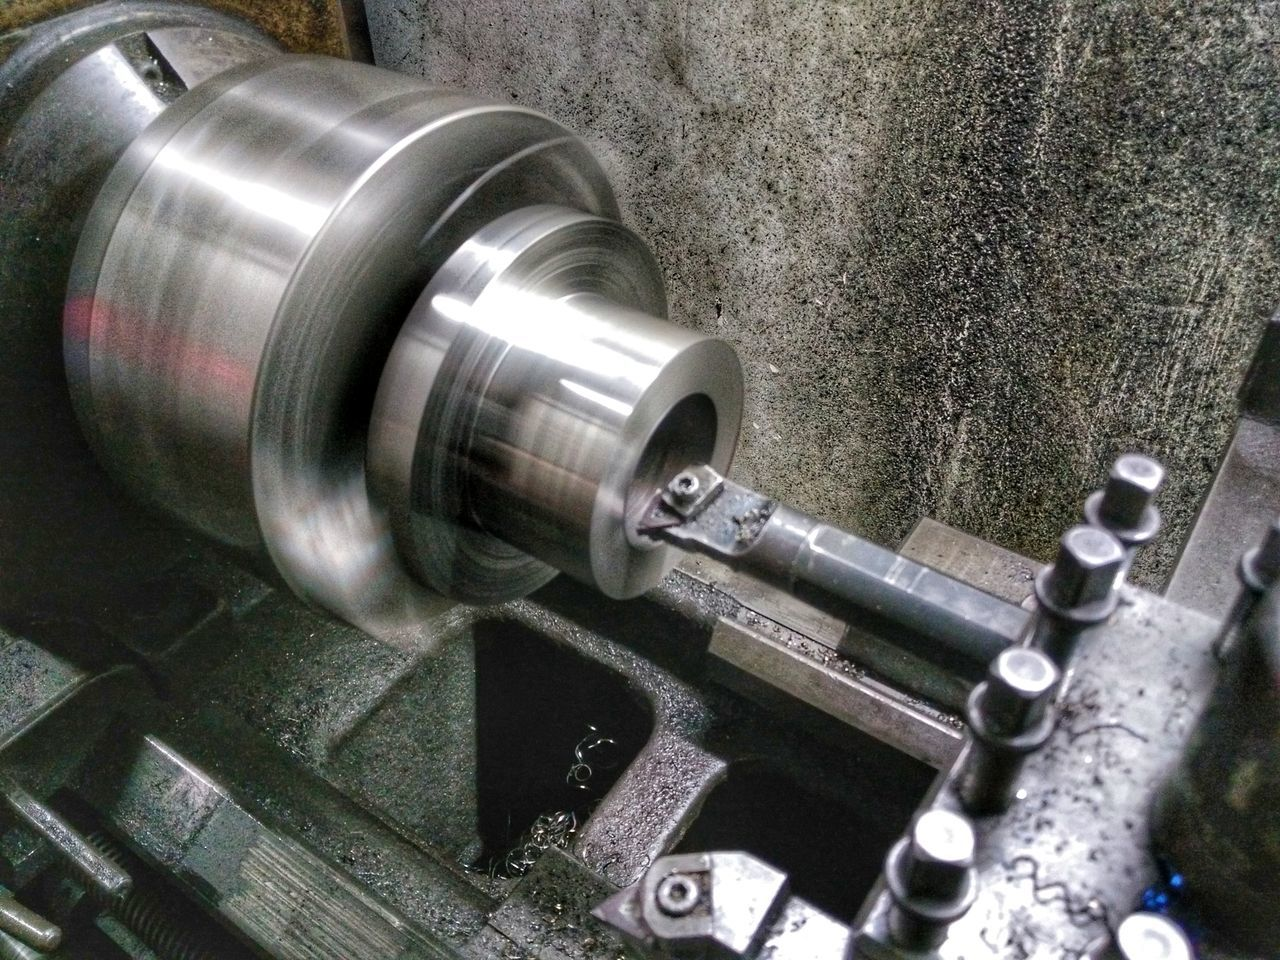 machinery, metal, industry, factory, manufacturing equipment, pipe - tube, indoors, no people, close-up, day, metal industry